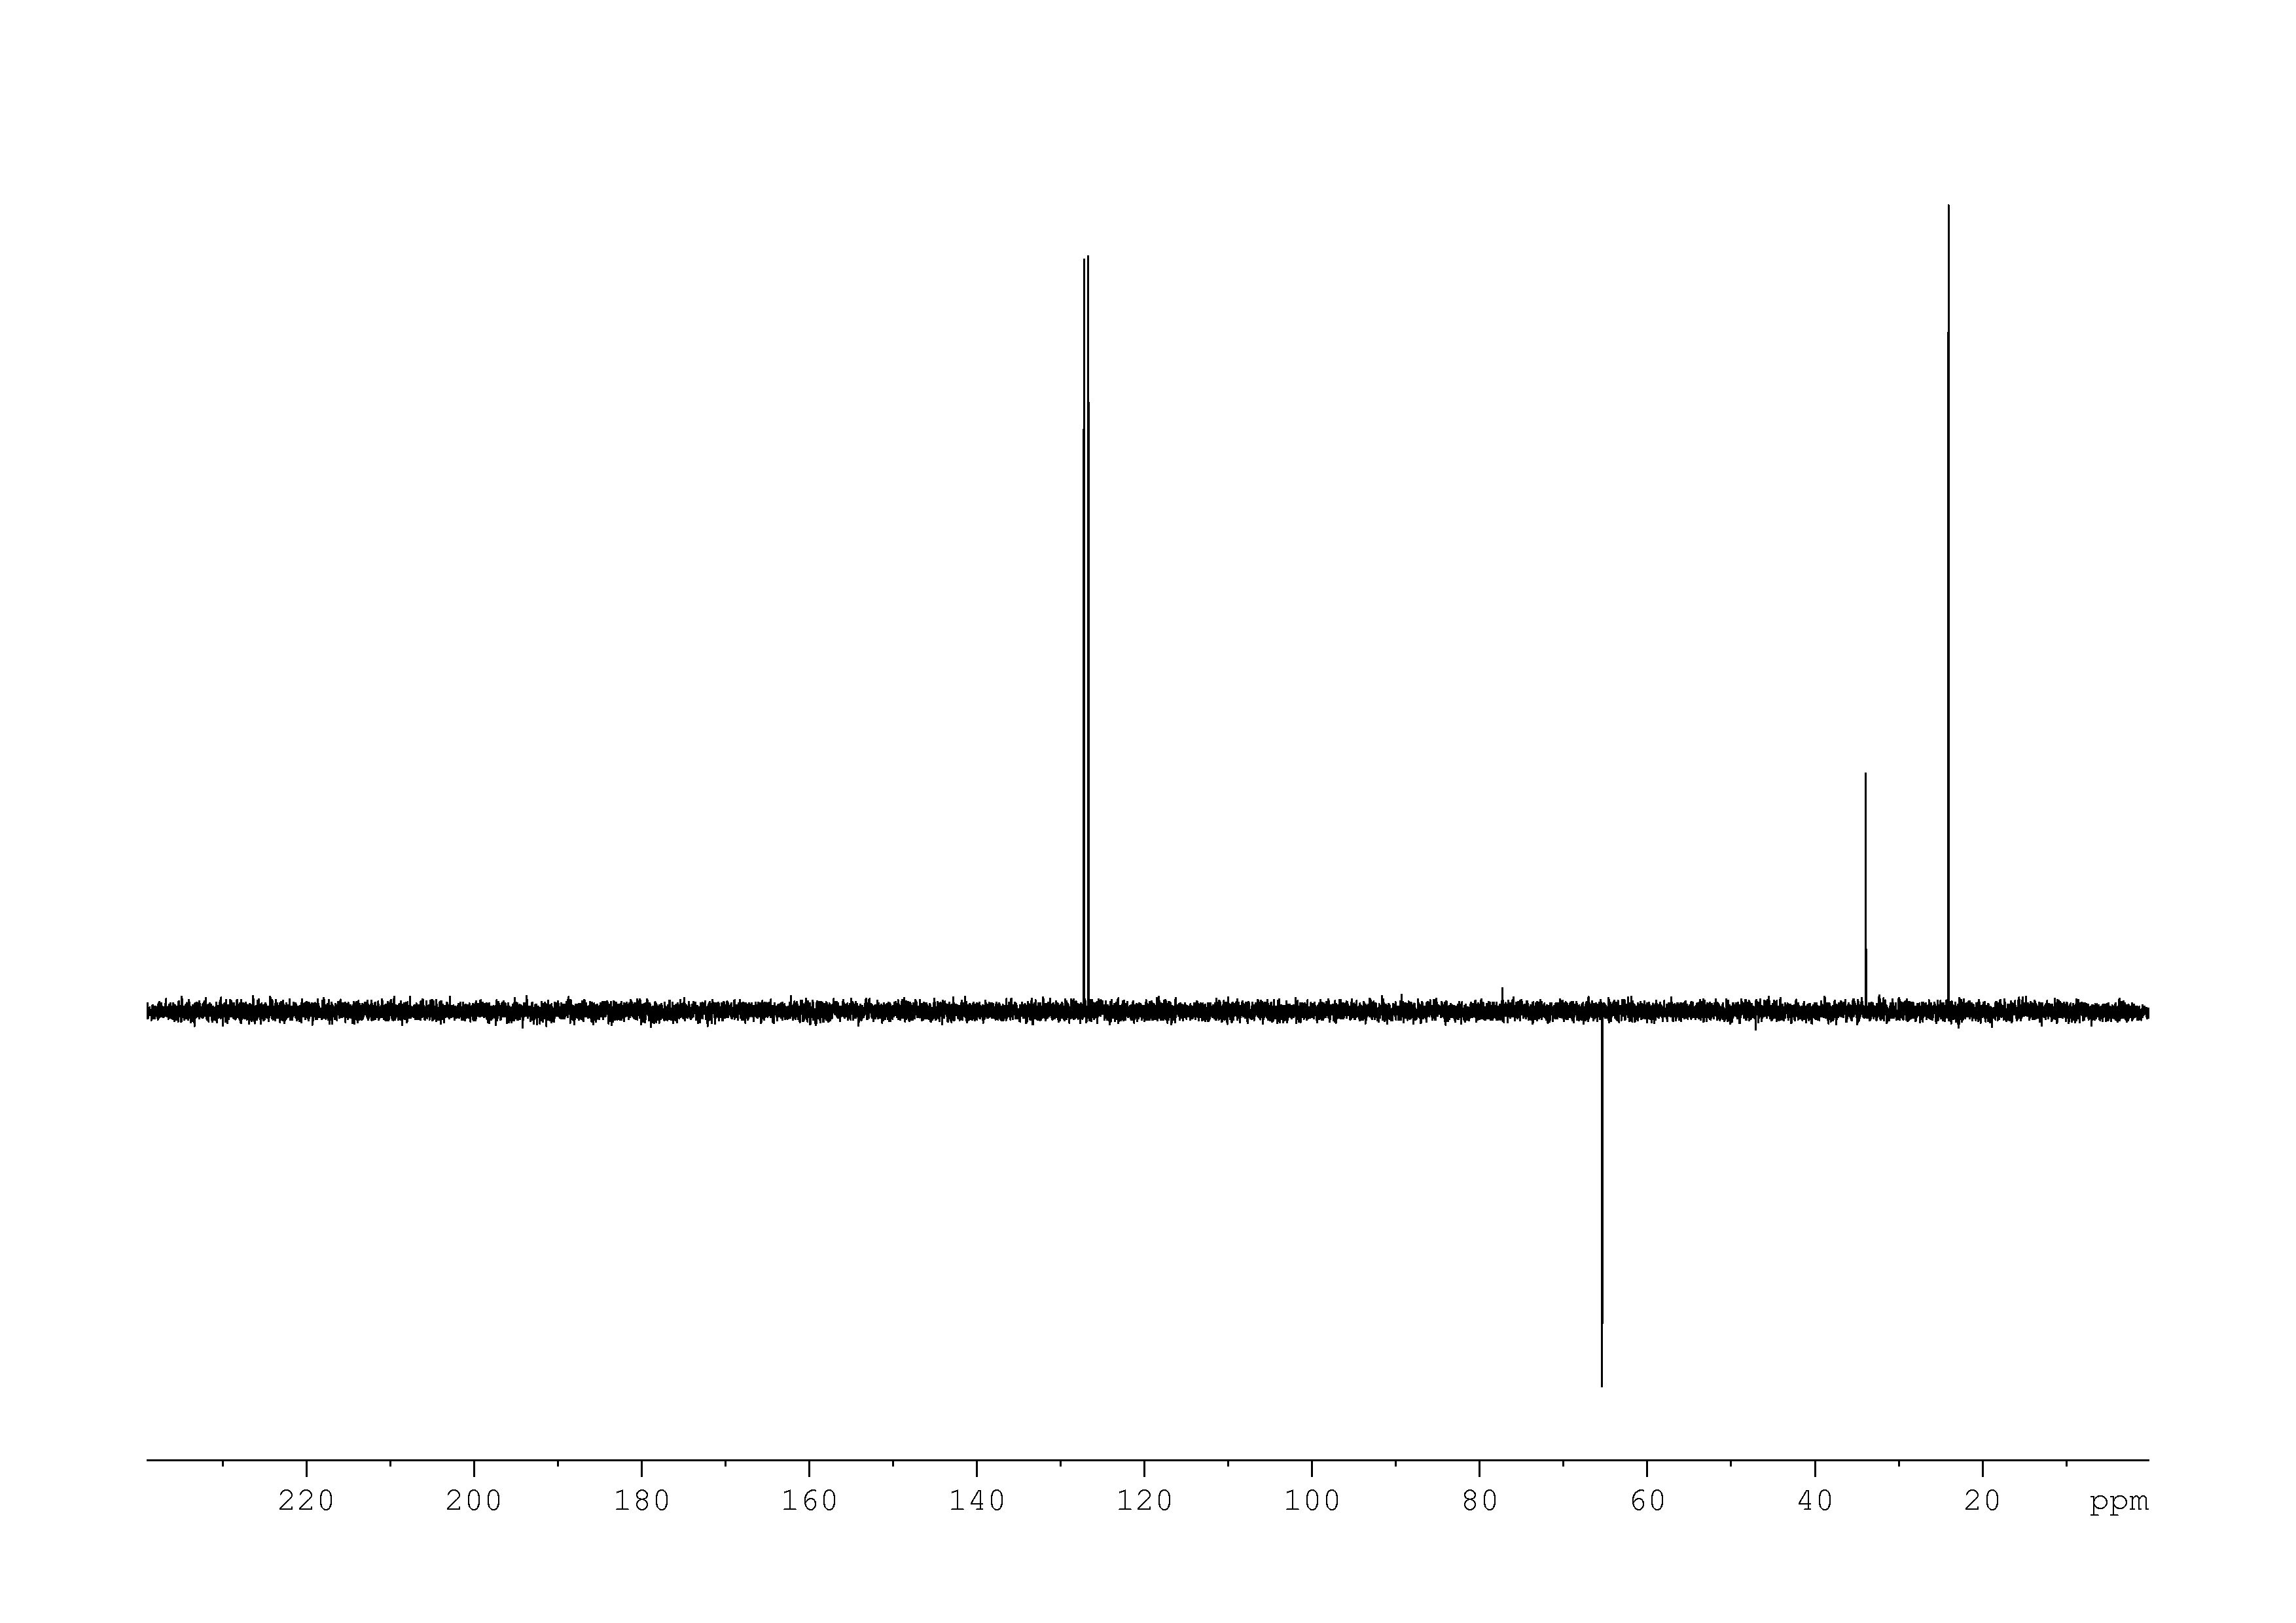 1D DEPT135, n/a spectrum for 4-isopropylbenzyl alcohol